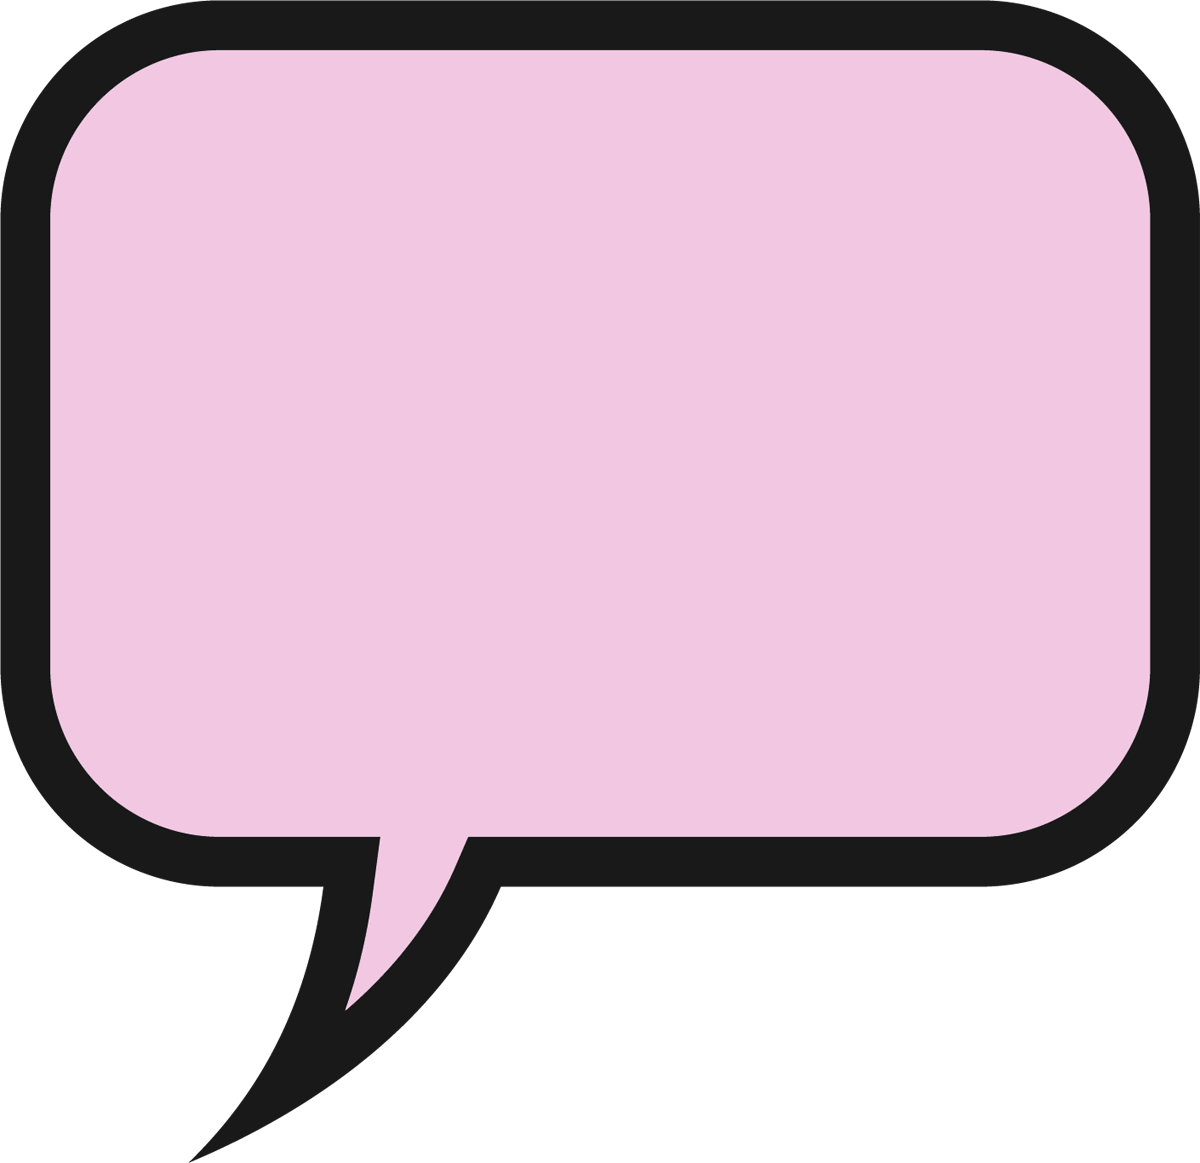 this is a speech bubble in the shape of a rounded rectangle - icon png -  Free PNG Images | TOPpng